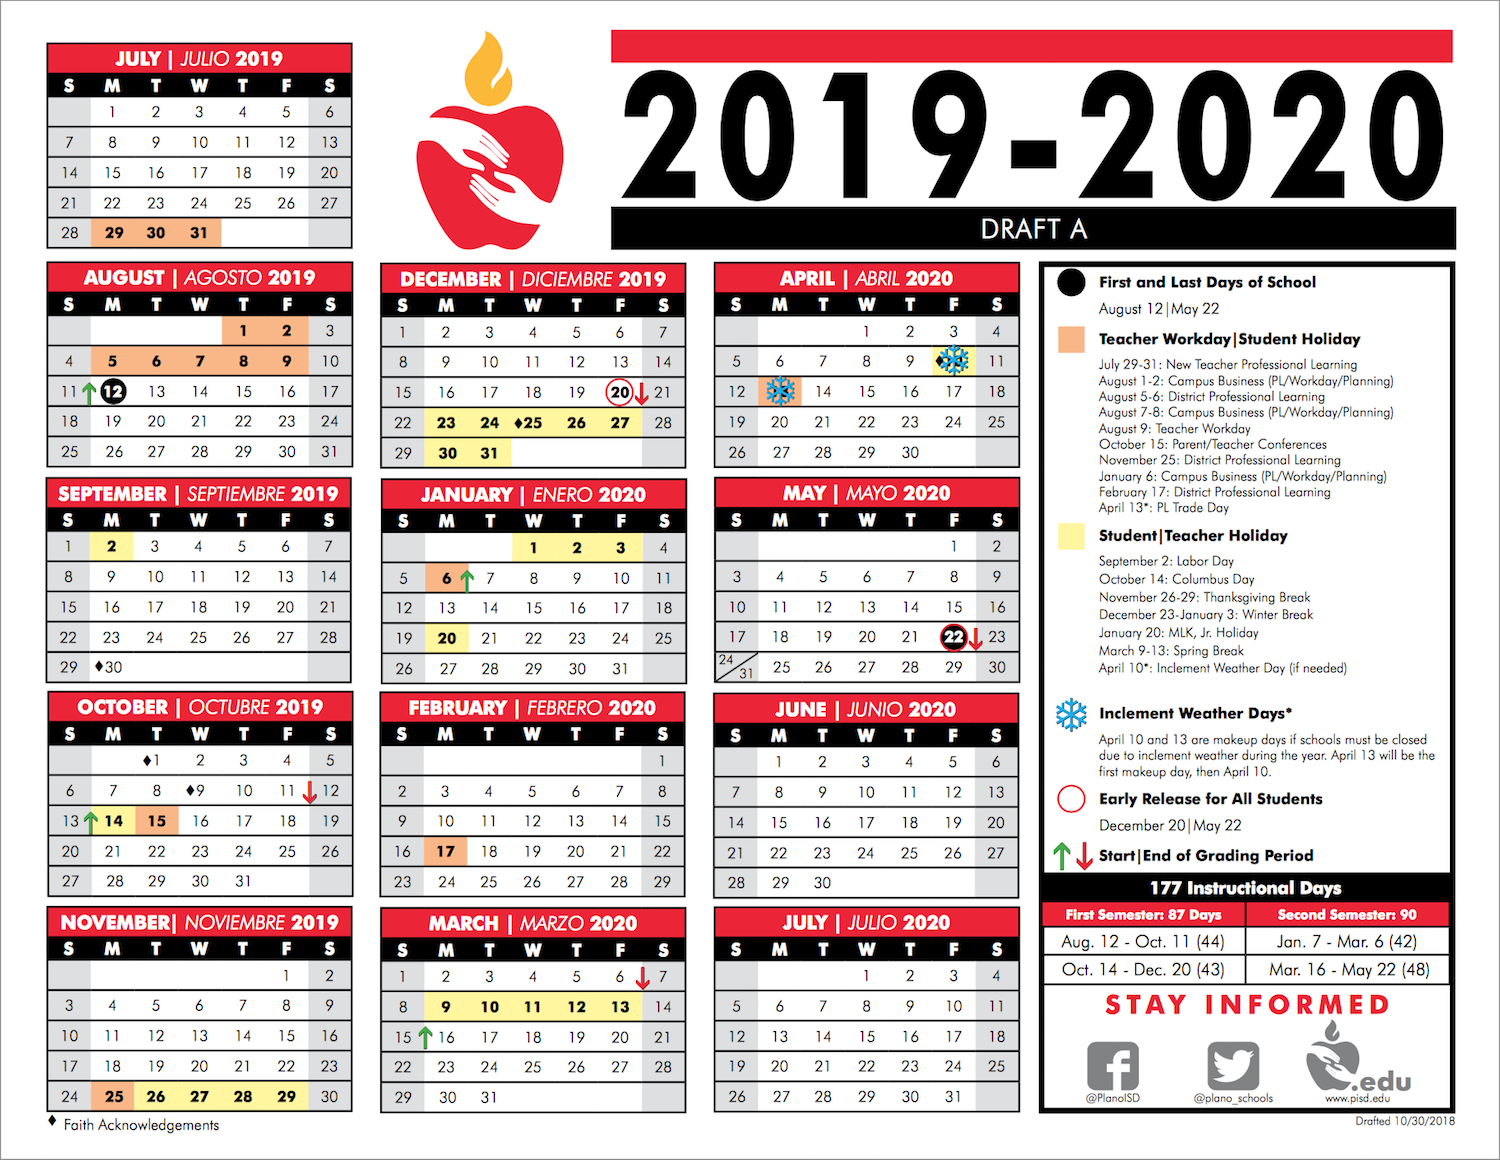 Plano Isd Calendar 2022.P I S D 2 0 2 0 2 0 2 1 C A L E N D A R Zonealarm Results